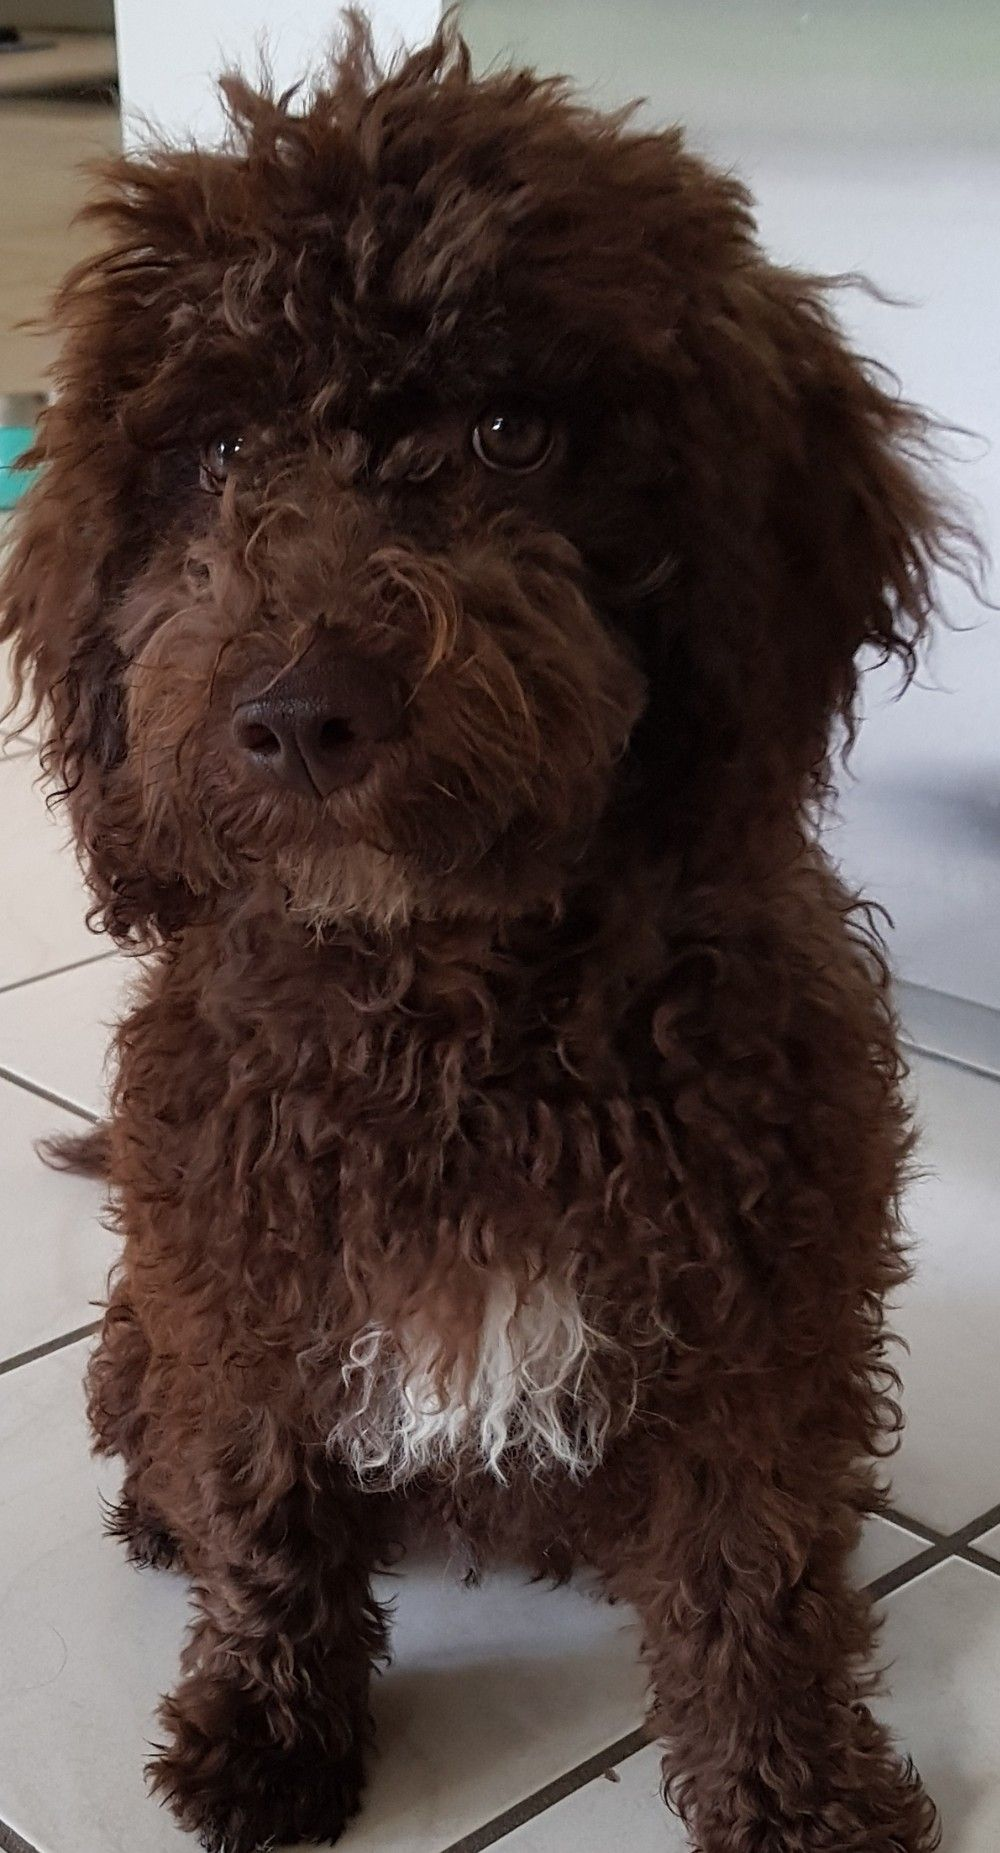 Pin By Morgan Willis On Dogs Lagotto Romagnolo Puppy Lagotto Romagnolo Doodle Dog